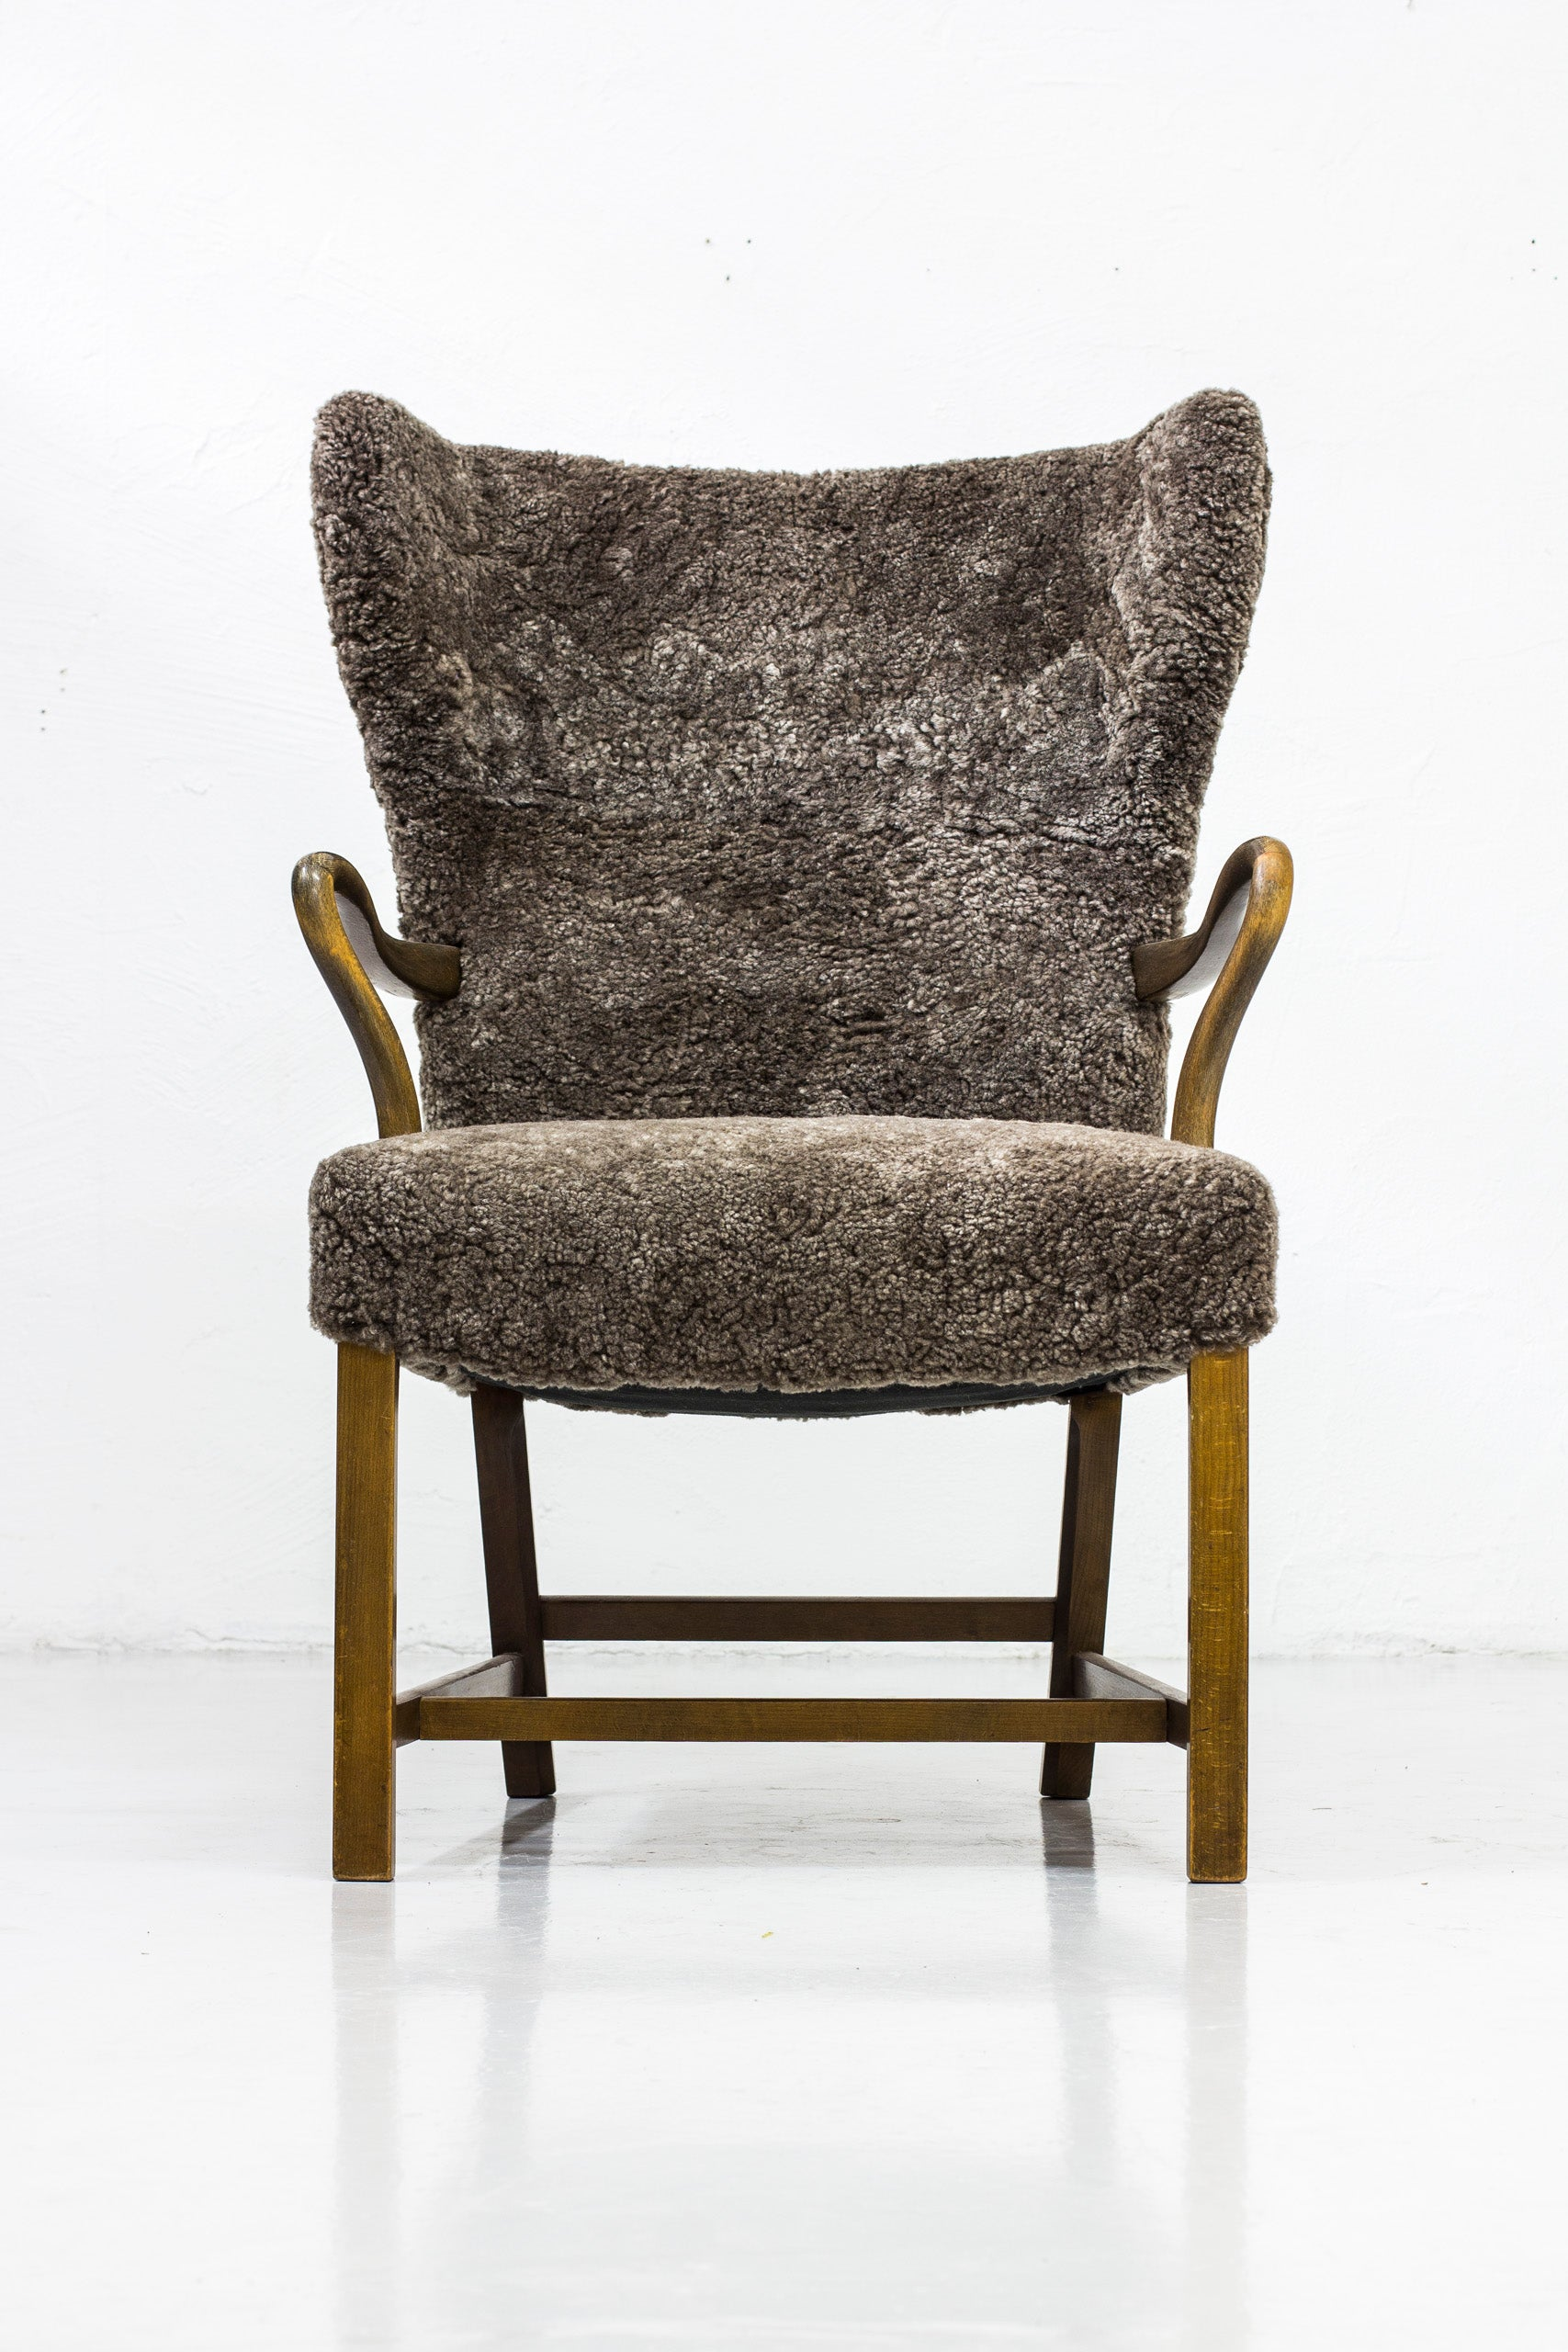 Wingback lounge chair in the manner of Frits Henningsen